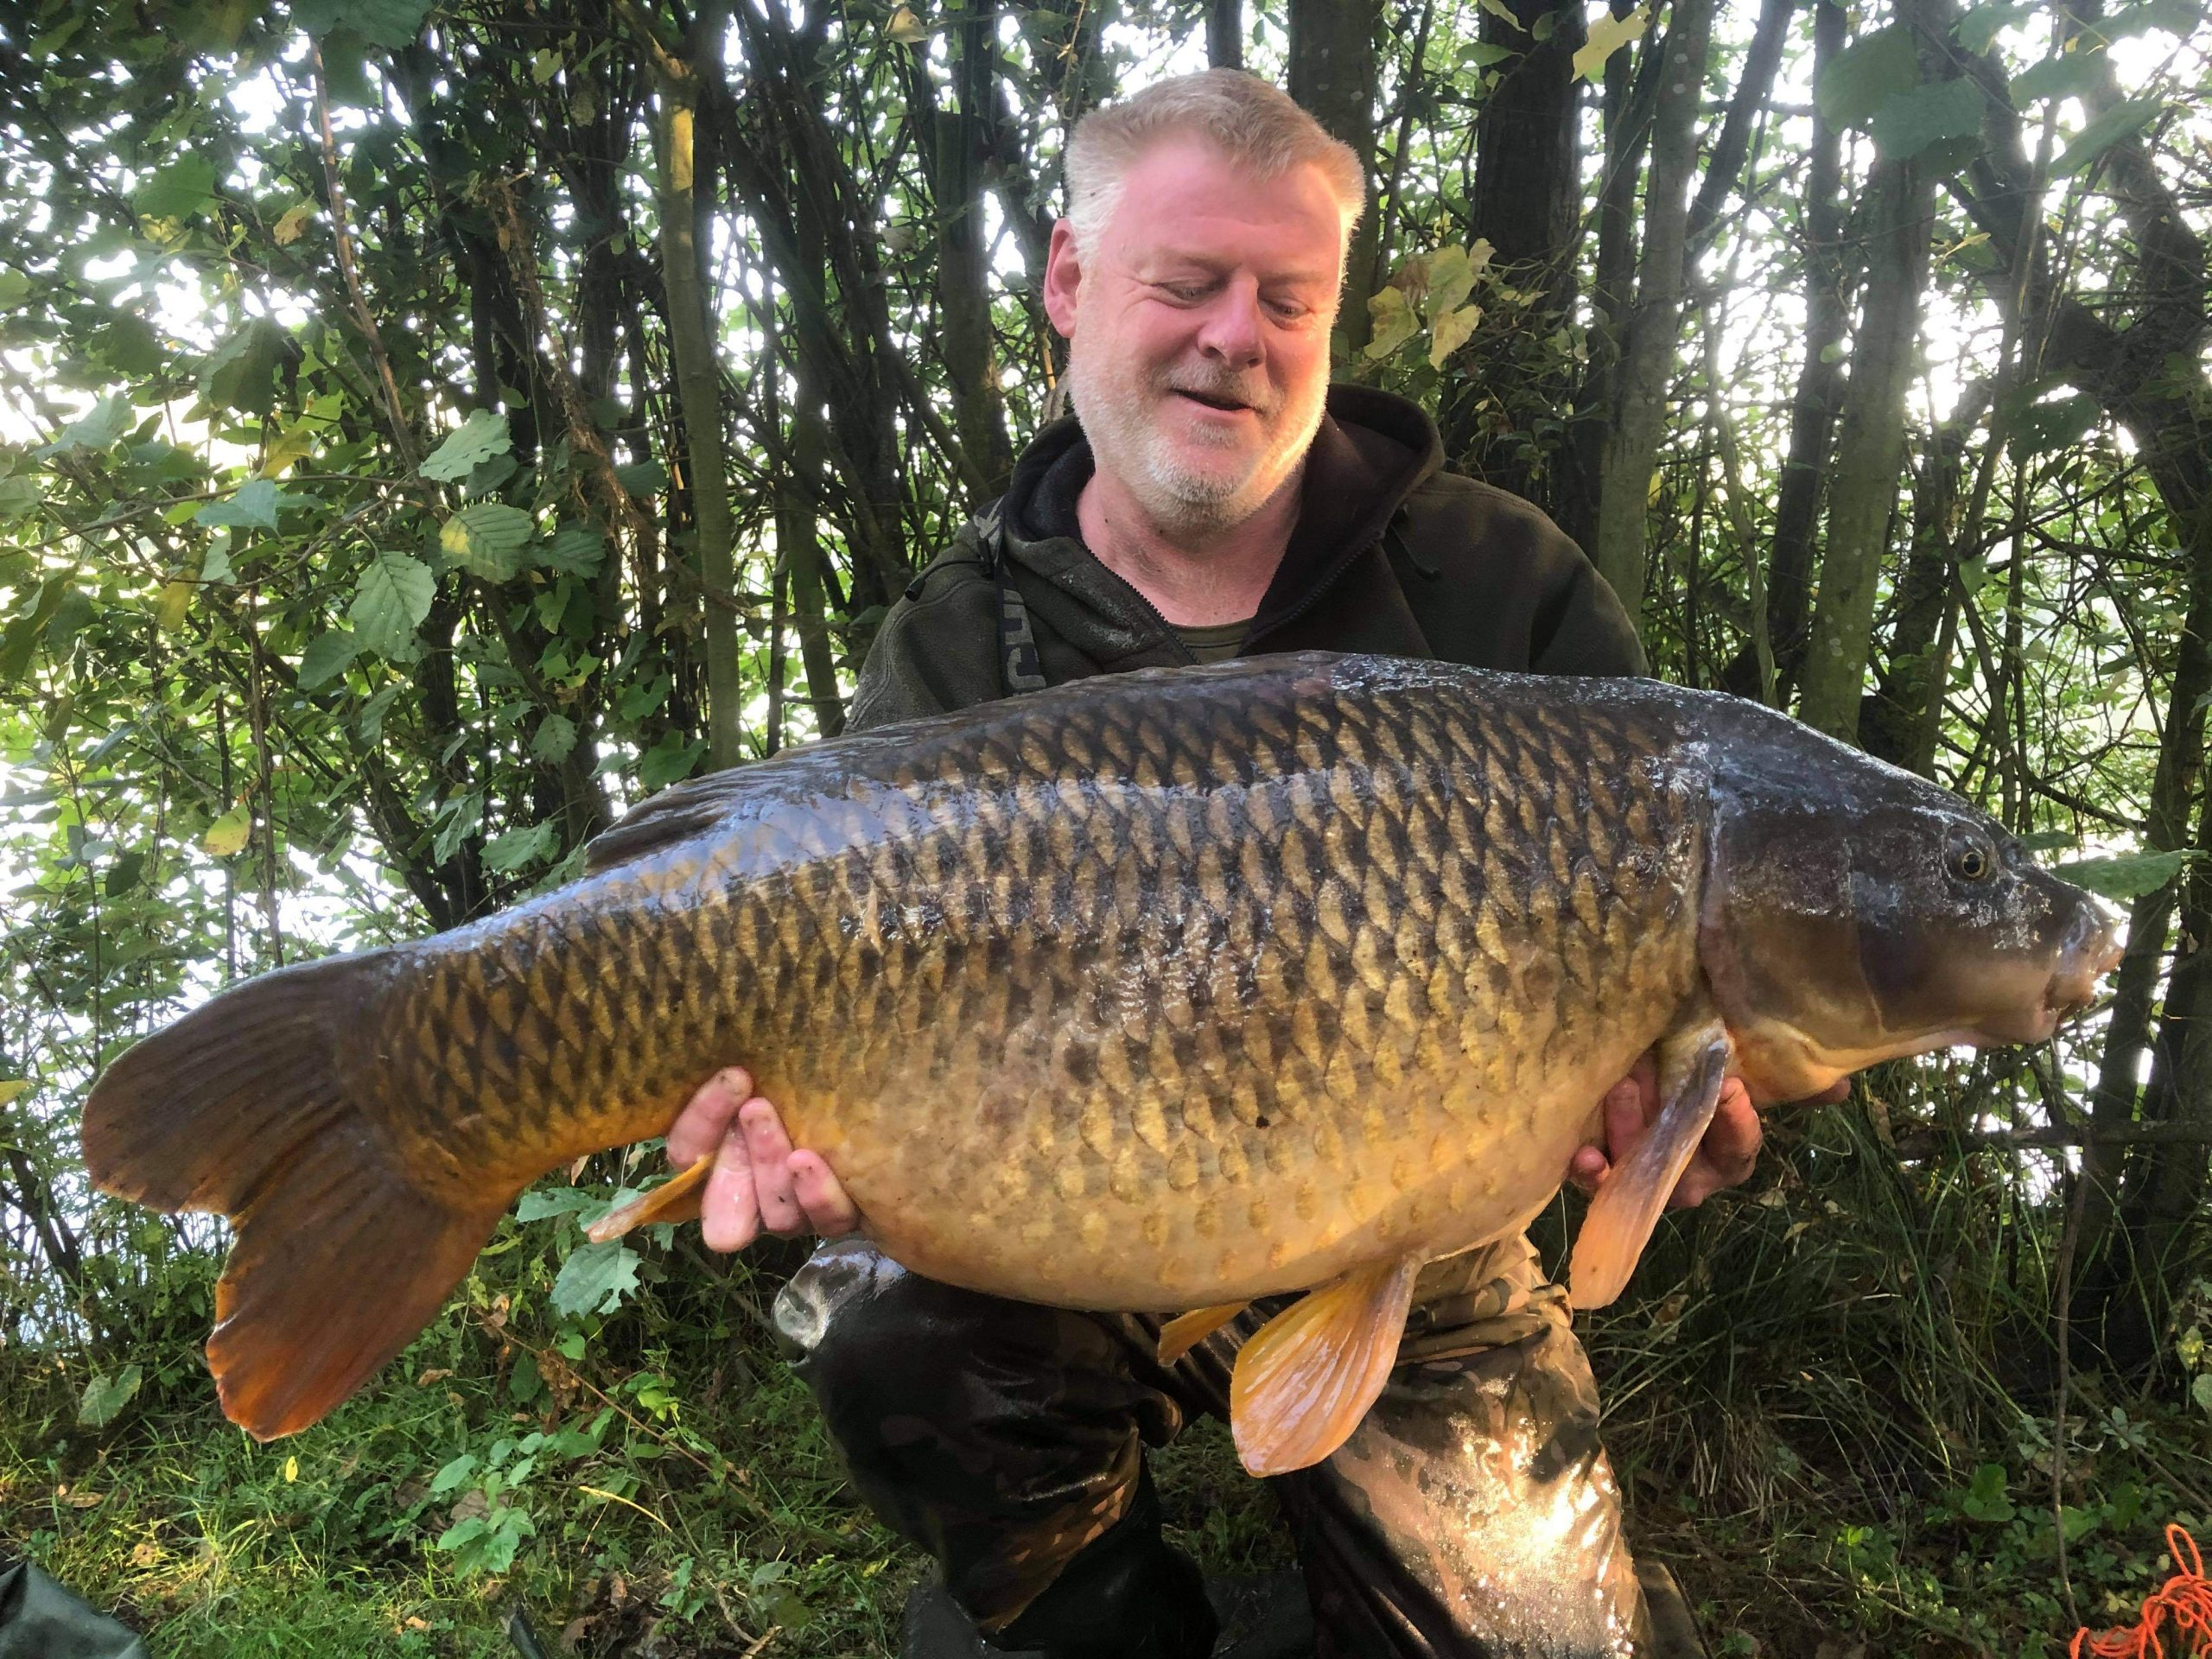 Spike with his new UK PB common caught on Whitetiger products.